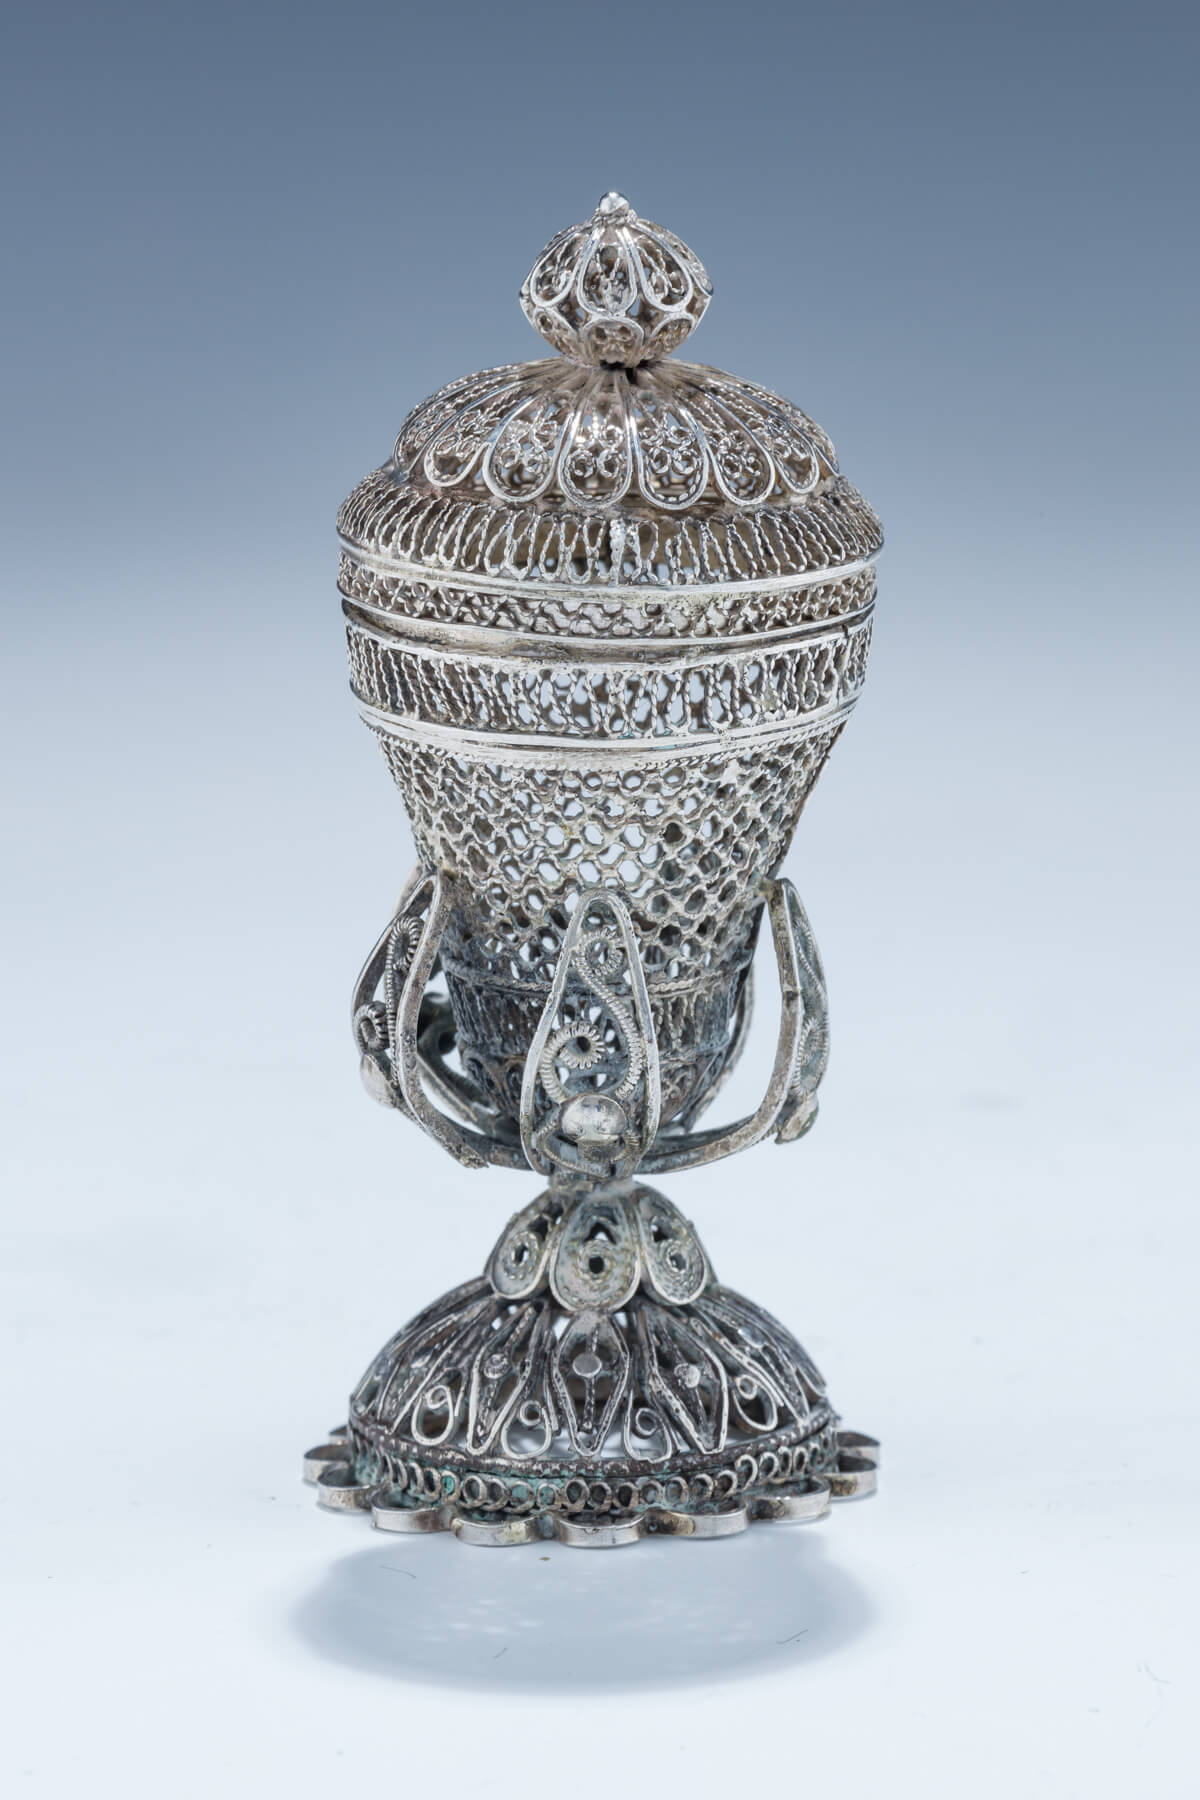 44. A Silver Spice Container